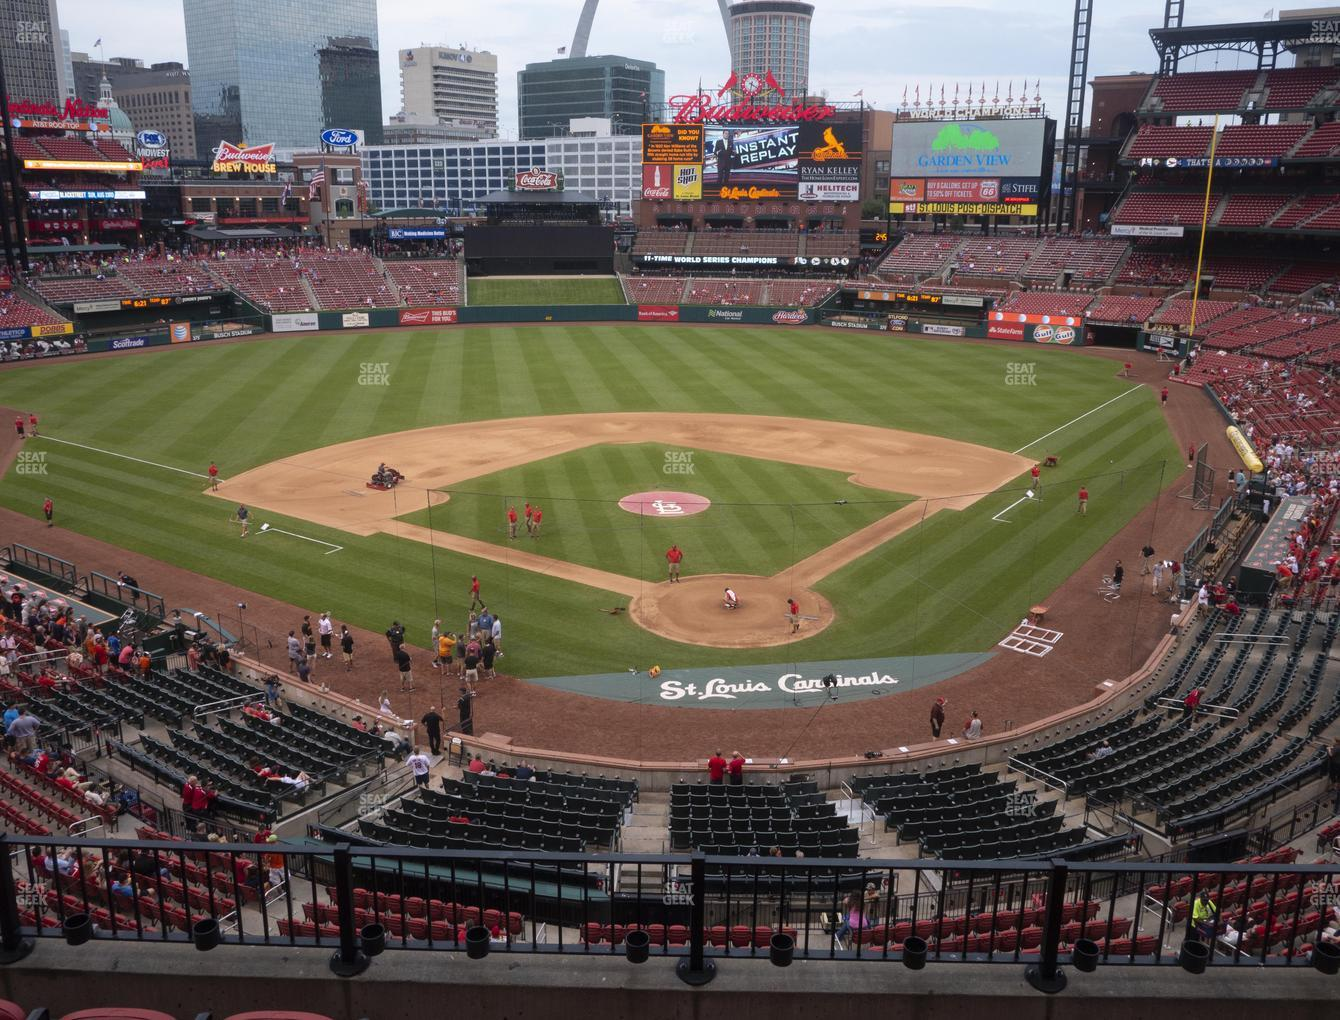 St. Louis Cardinals at Busch Stadium Home Redbird Club 251 View